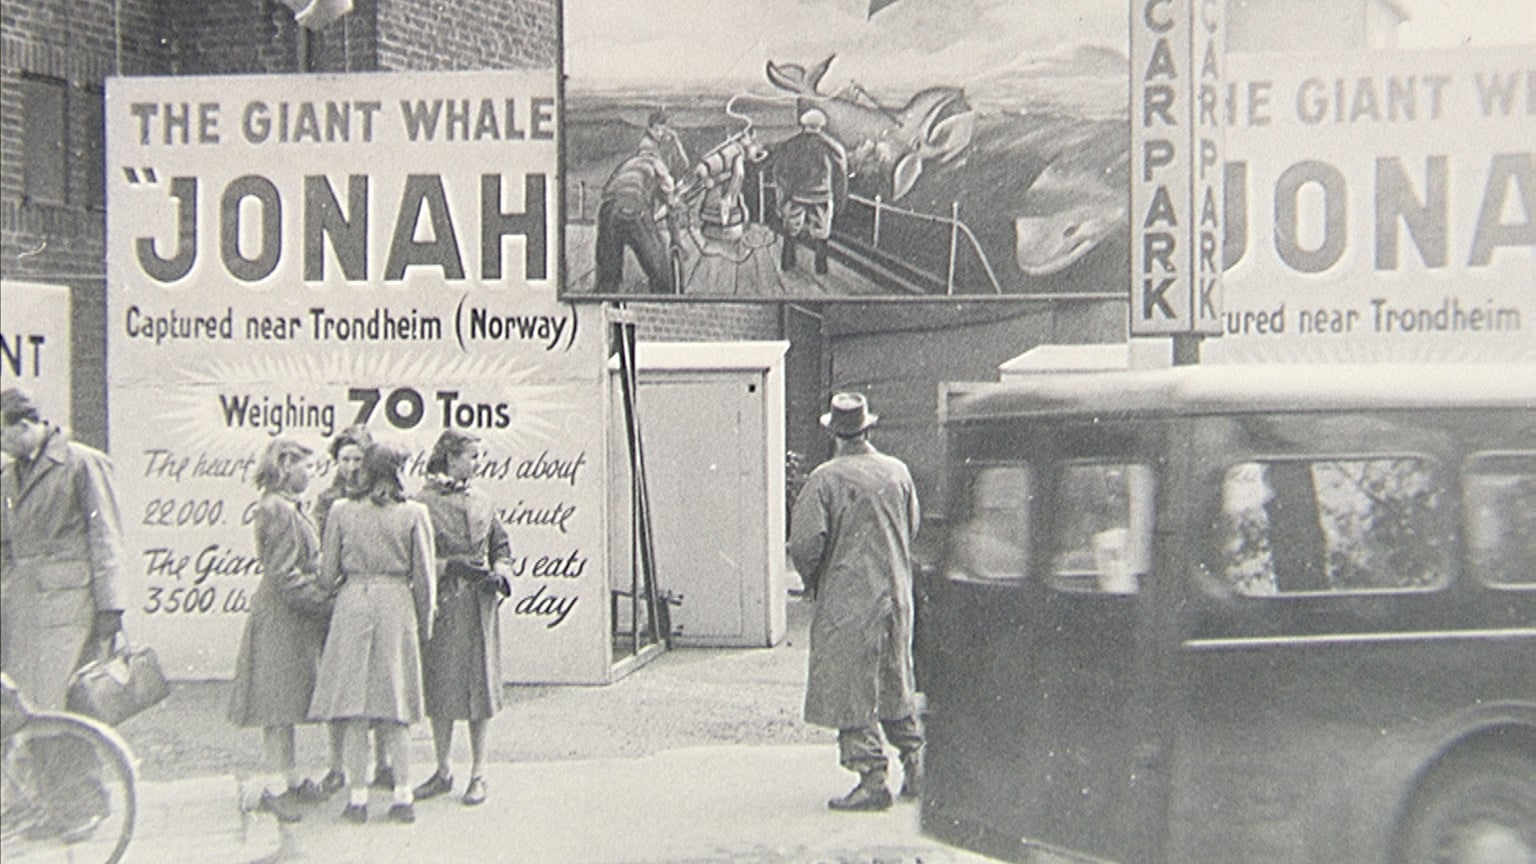 Jonah the Whale Show, Rugby Fair, 1954 - Photograph by Jack Leeson